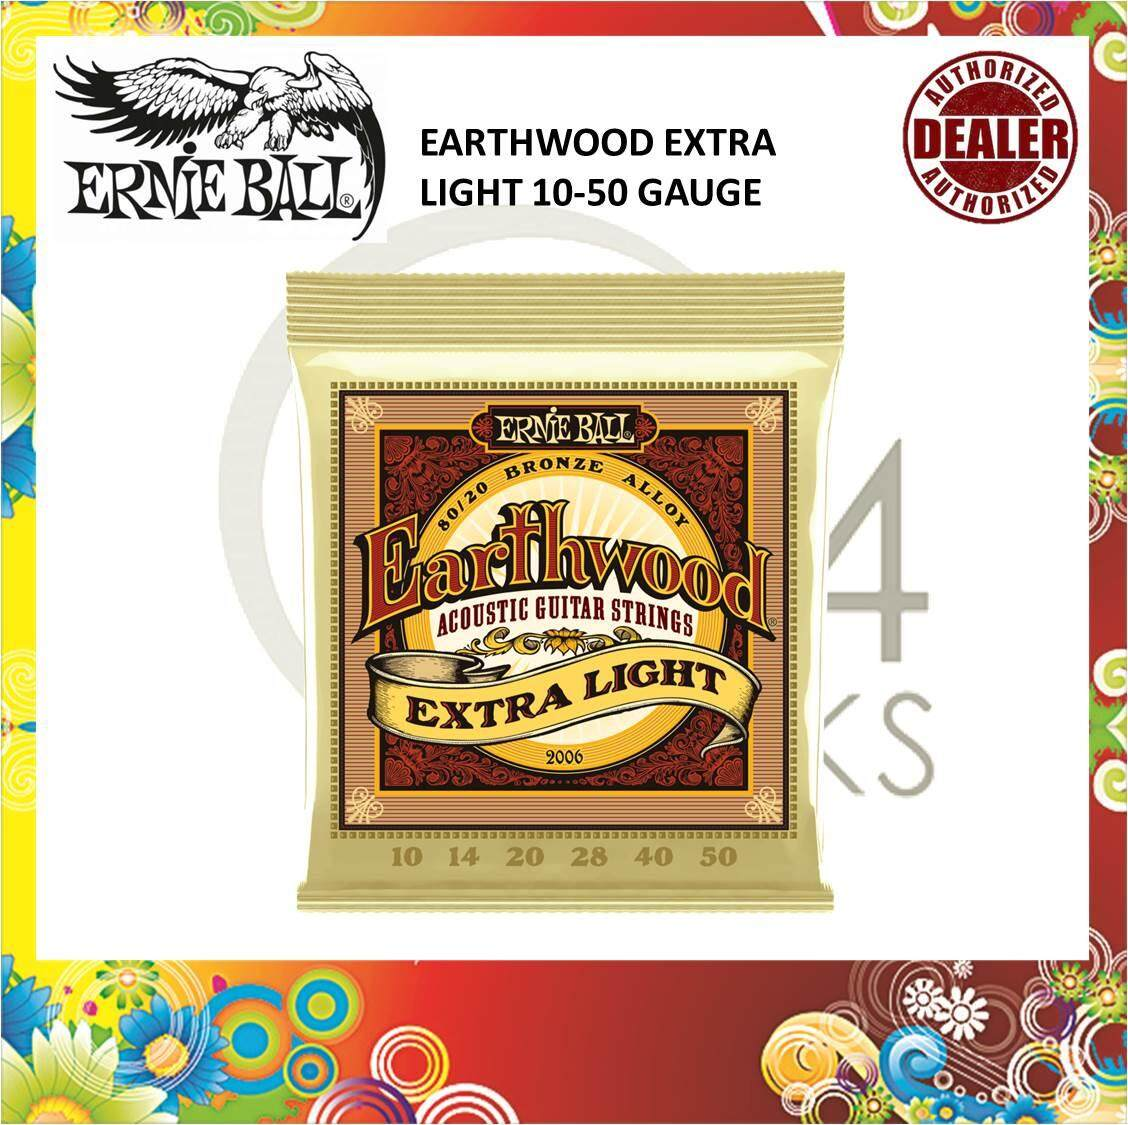 Ernie Ball 2006 Earthwood Extra Light 80/20 Bronze Acoustic Guitar Strings 10-50 Gauge / Ernieball 2006 By 724 Rocks.